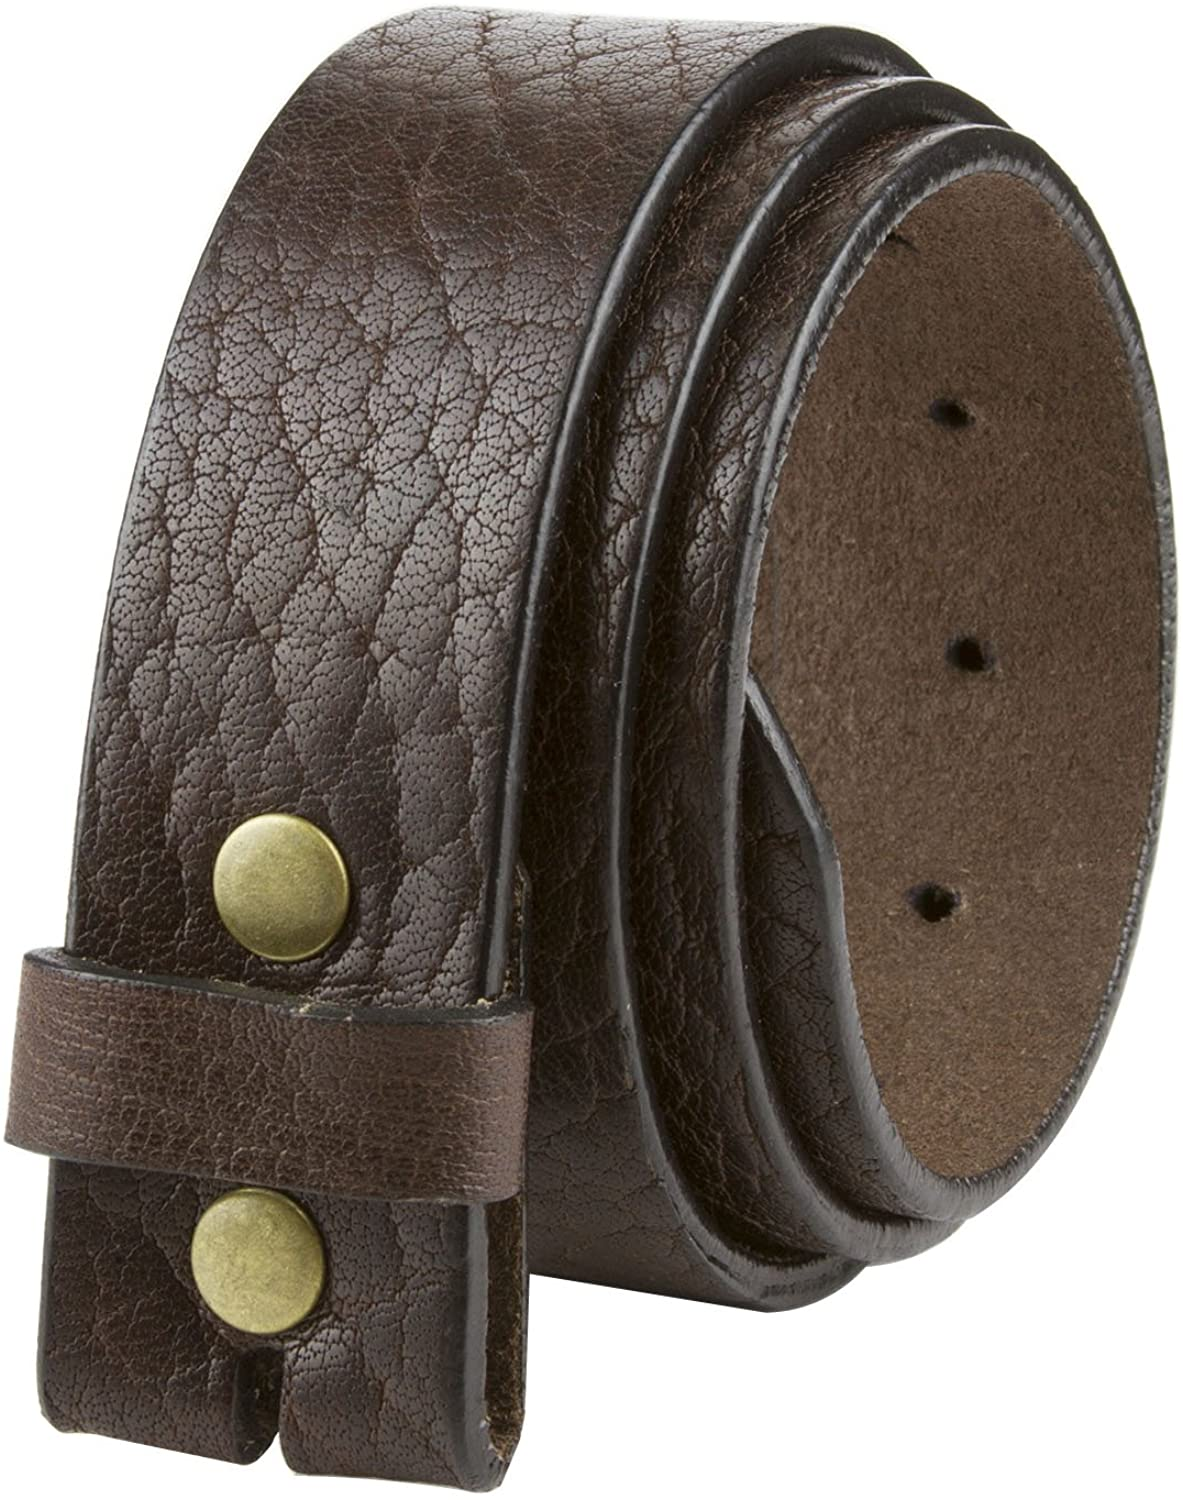 LEJON Casual One Piece Full Grain Vintage Leather Belt Strap Made in USA 1 1/2